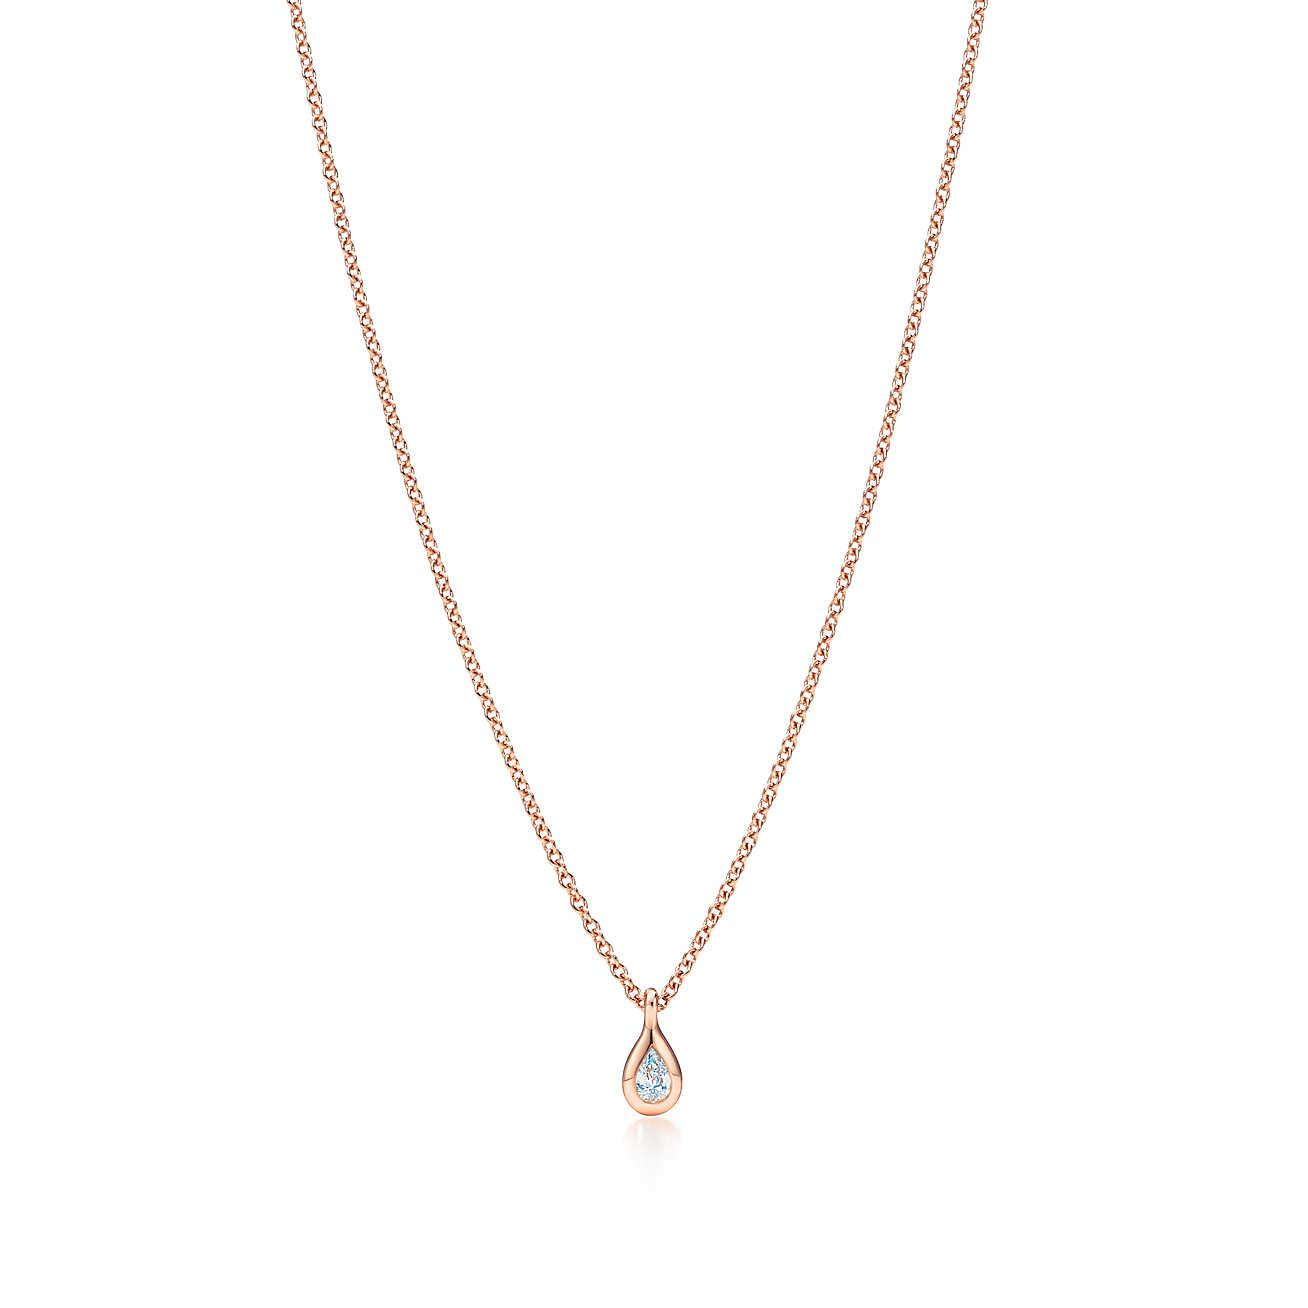 Elsa Peretti Diamonds by the Yard pendant in 18k rose gold - Size.03 Tiffany & Co. xaM9f